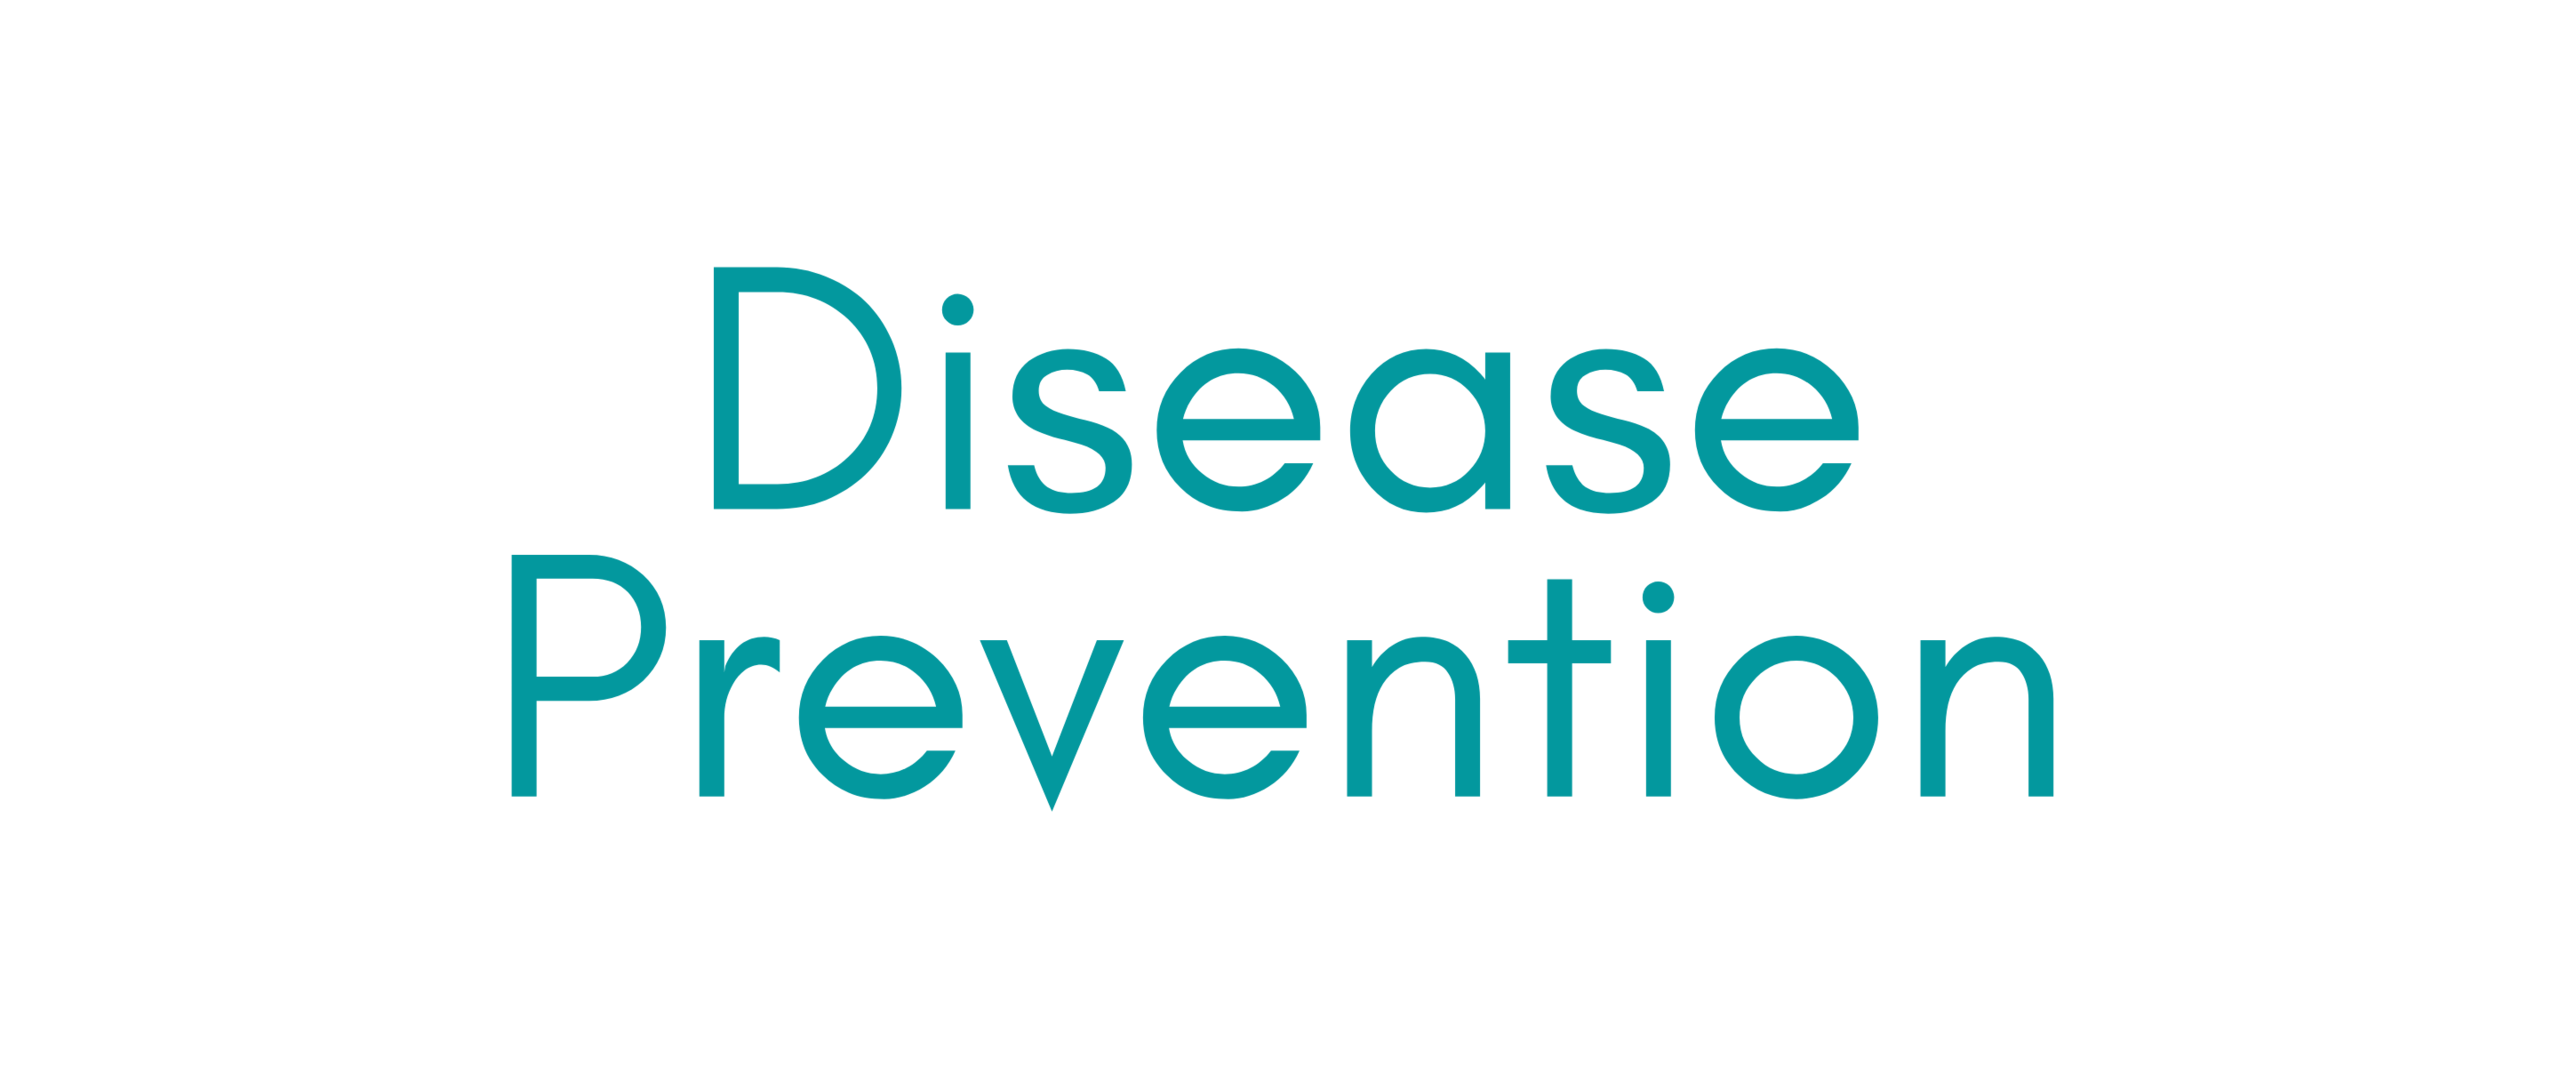 Disease Prevention Blog